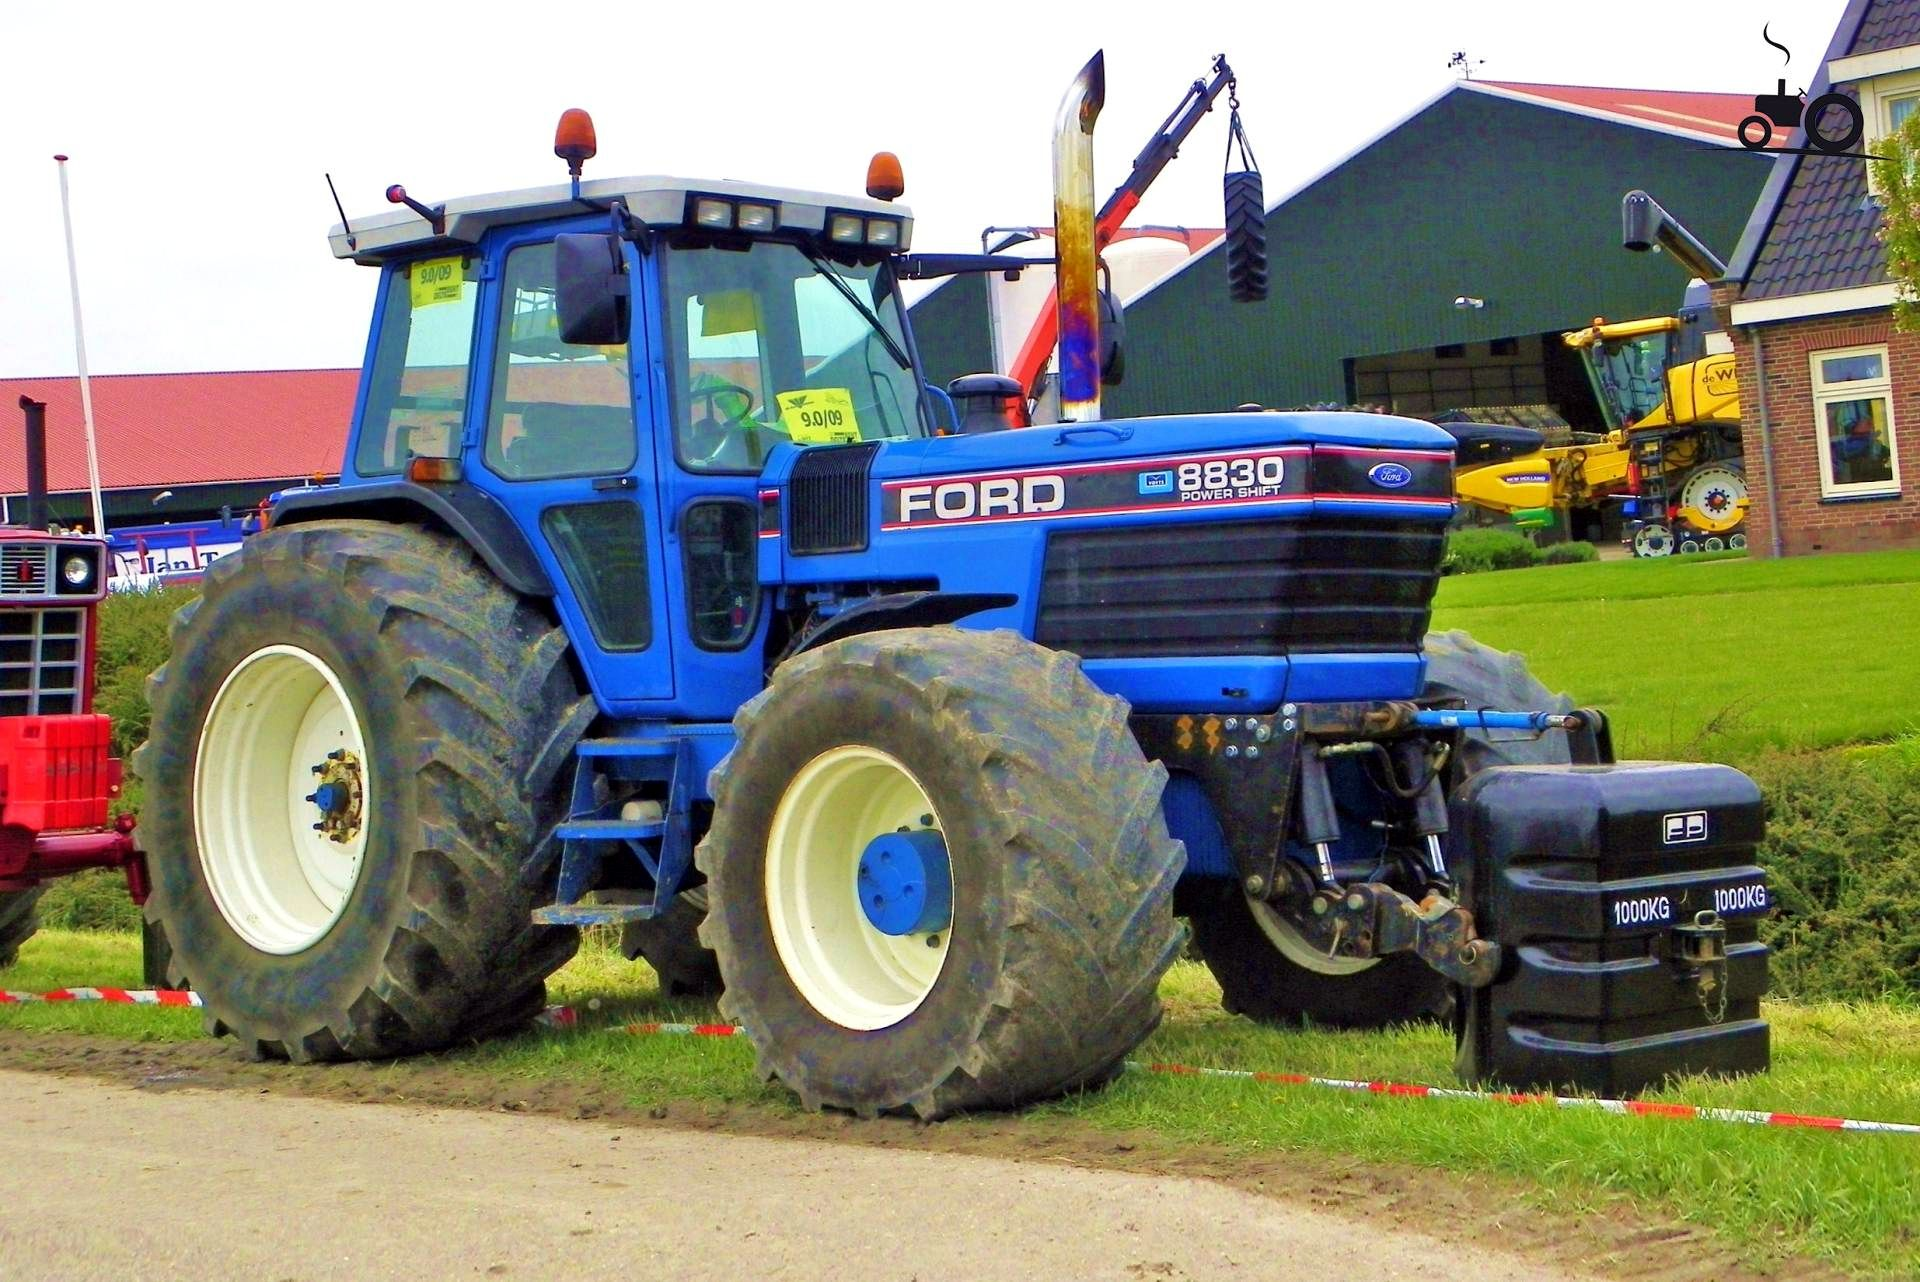 Ford 8830 Ford Tractors, Agriculture, Horticulture